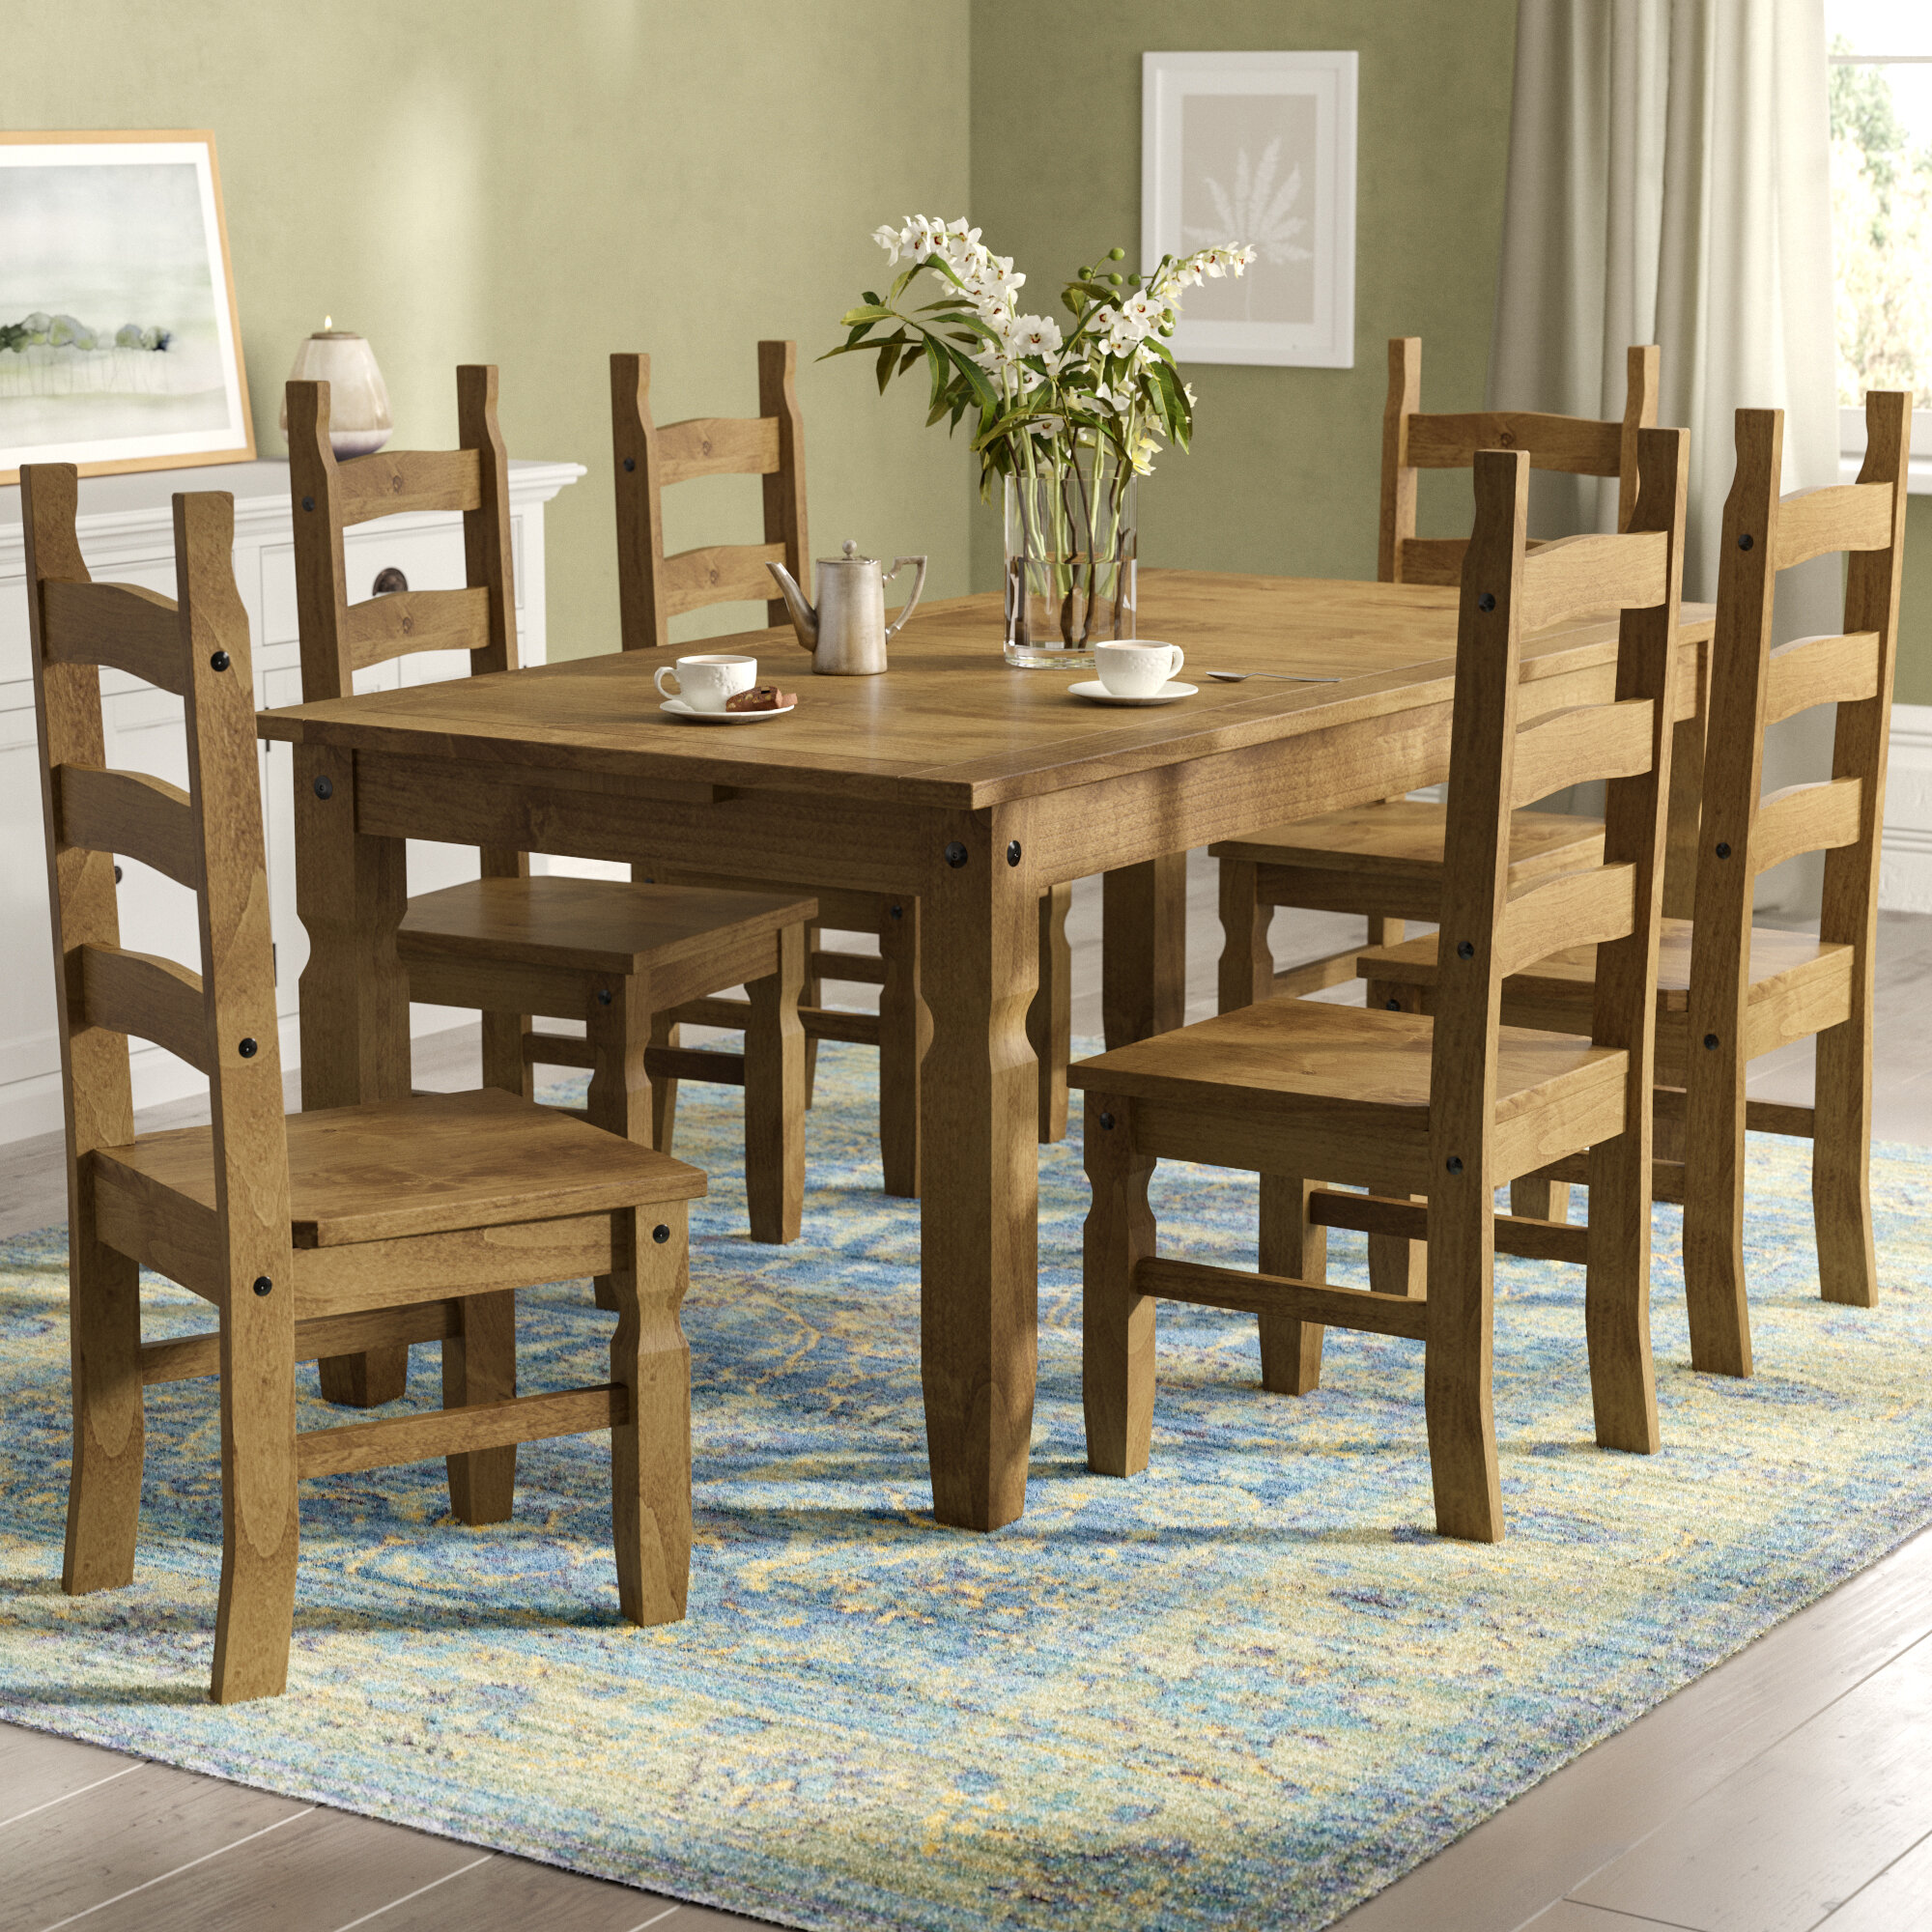 Cucina Letters Kitchen Decor, Union Rustic Dodge Dining Set With 6 Chairs Reviews Wayfair Co Uk